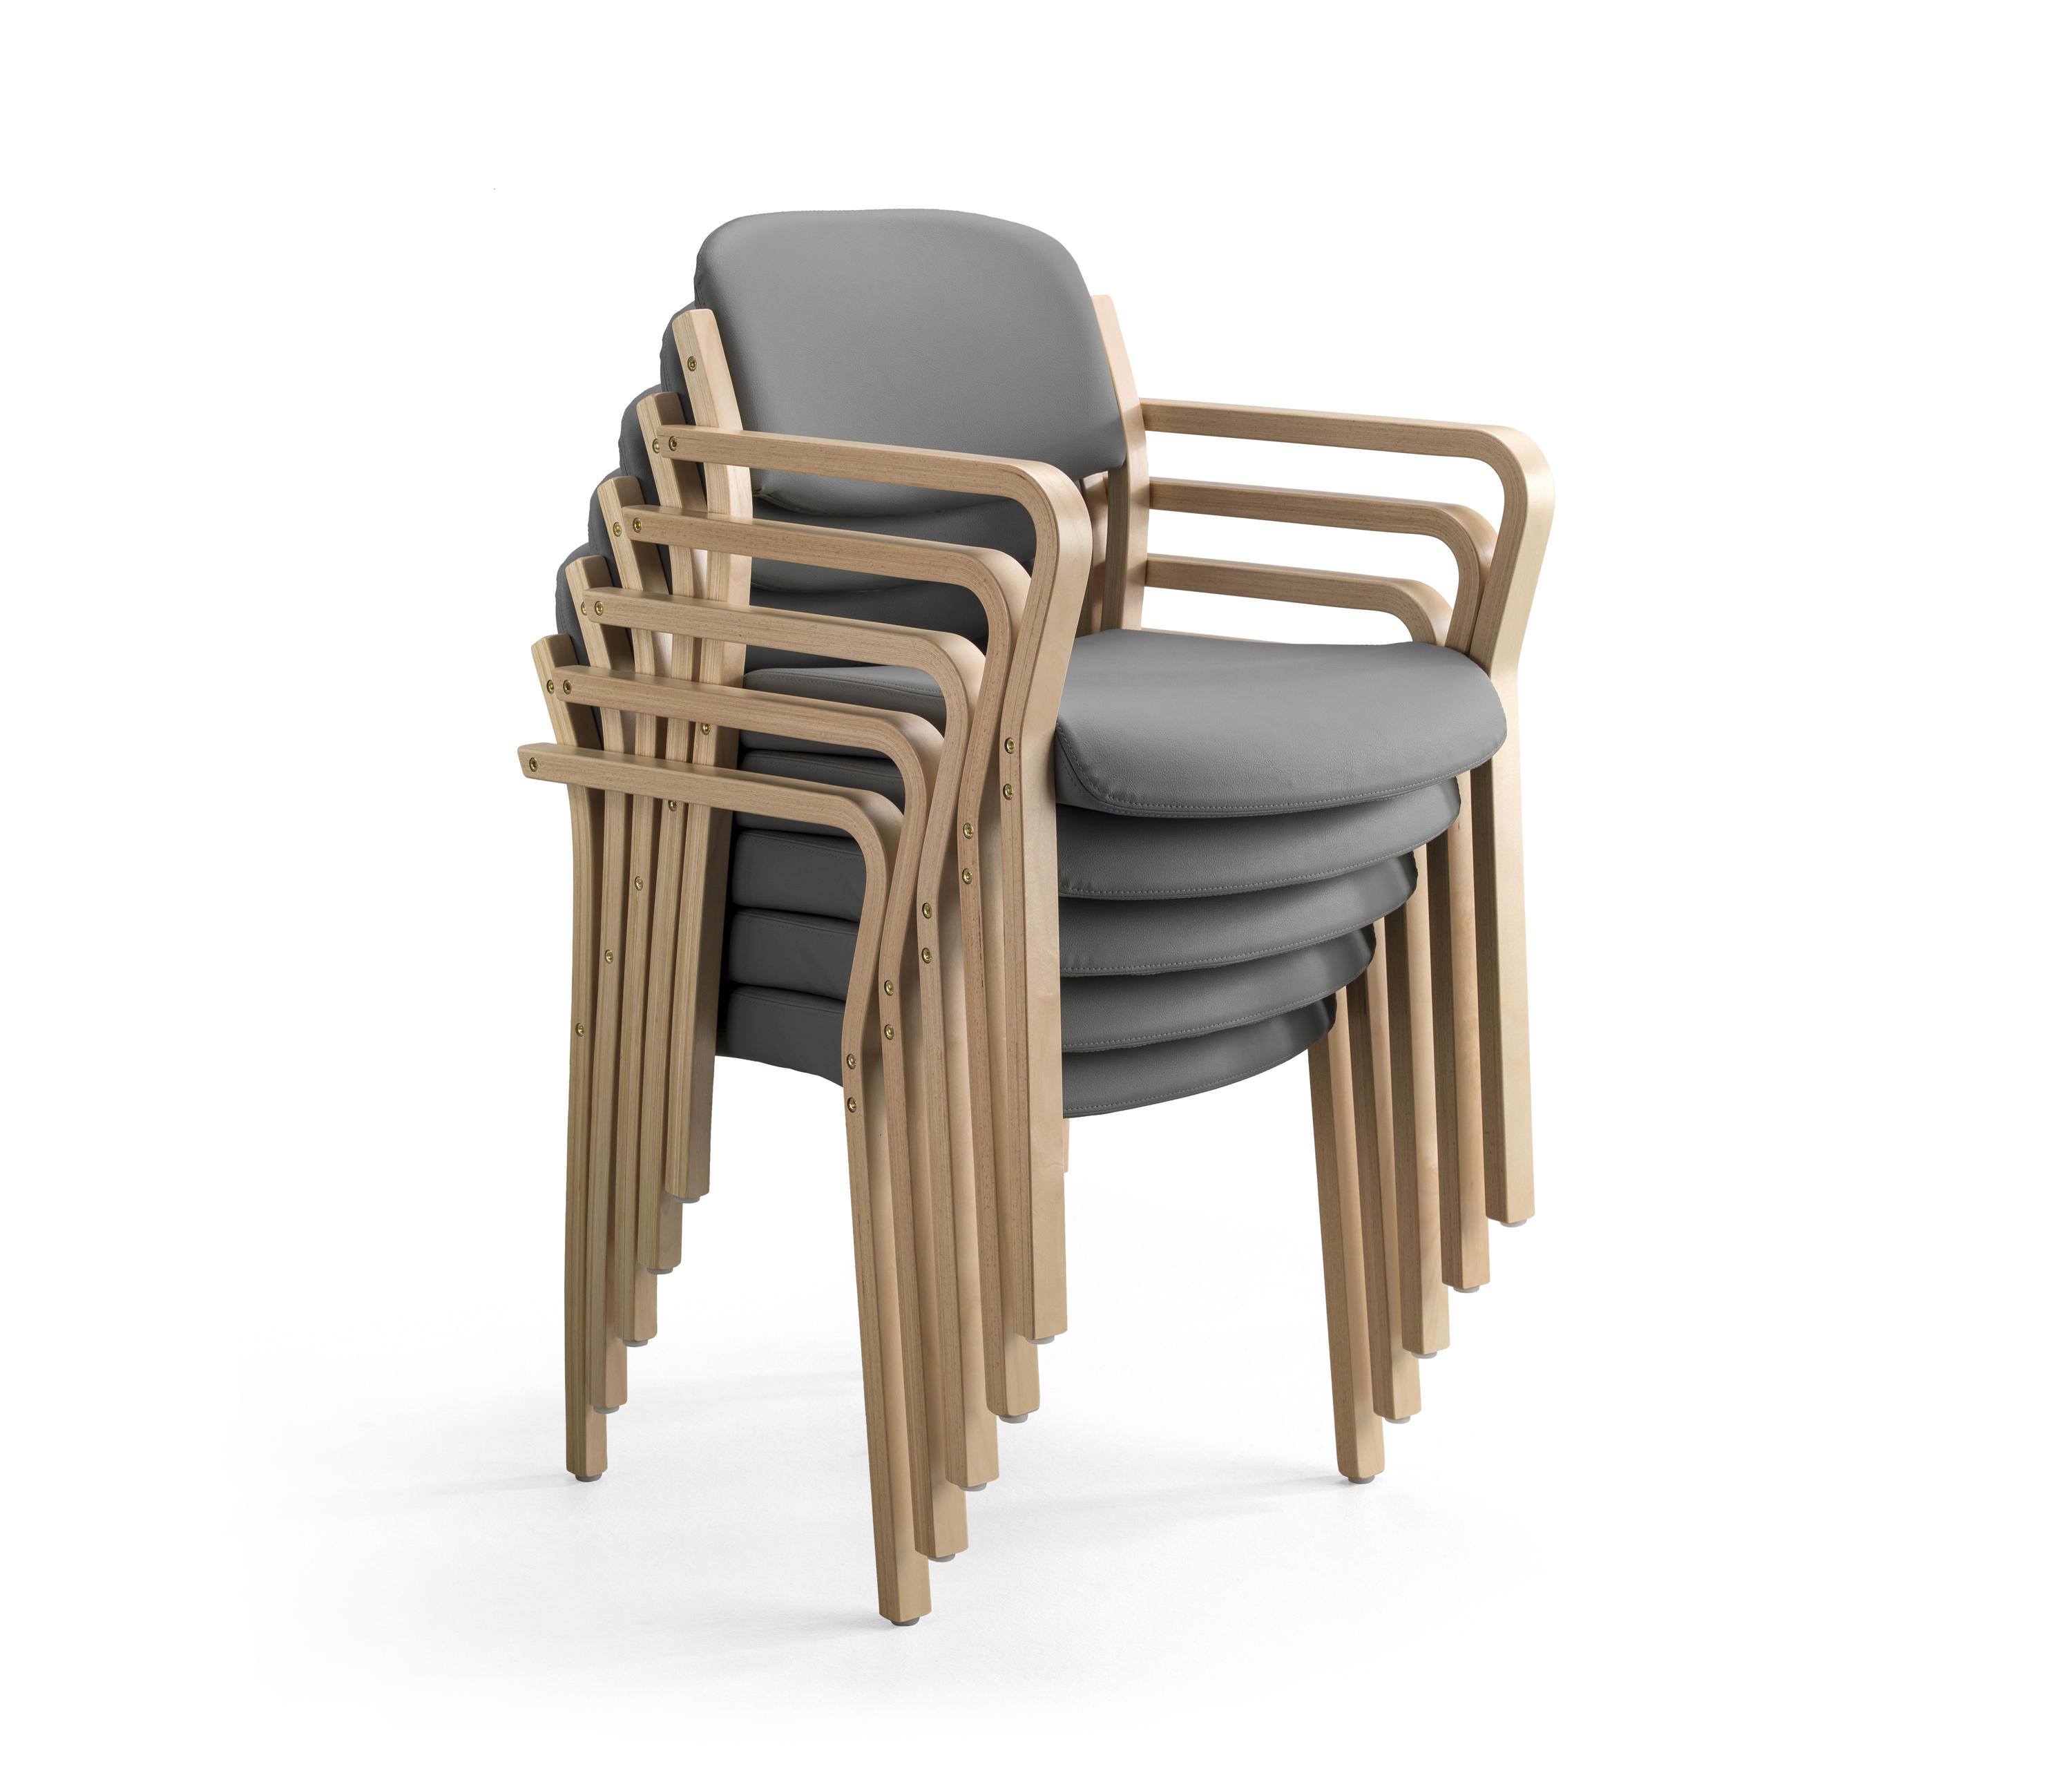 duun chair stackable elderly care chairs from helland